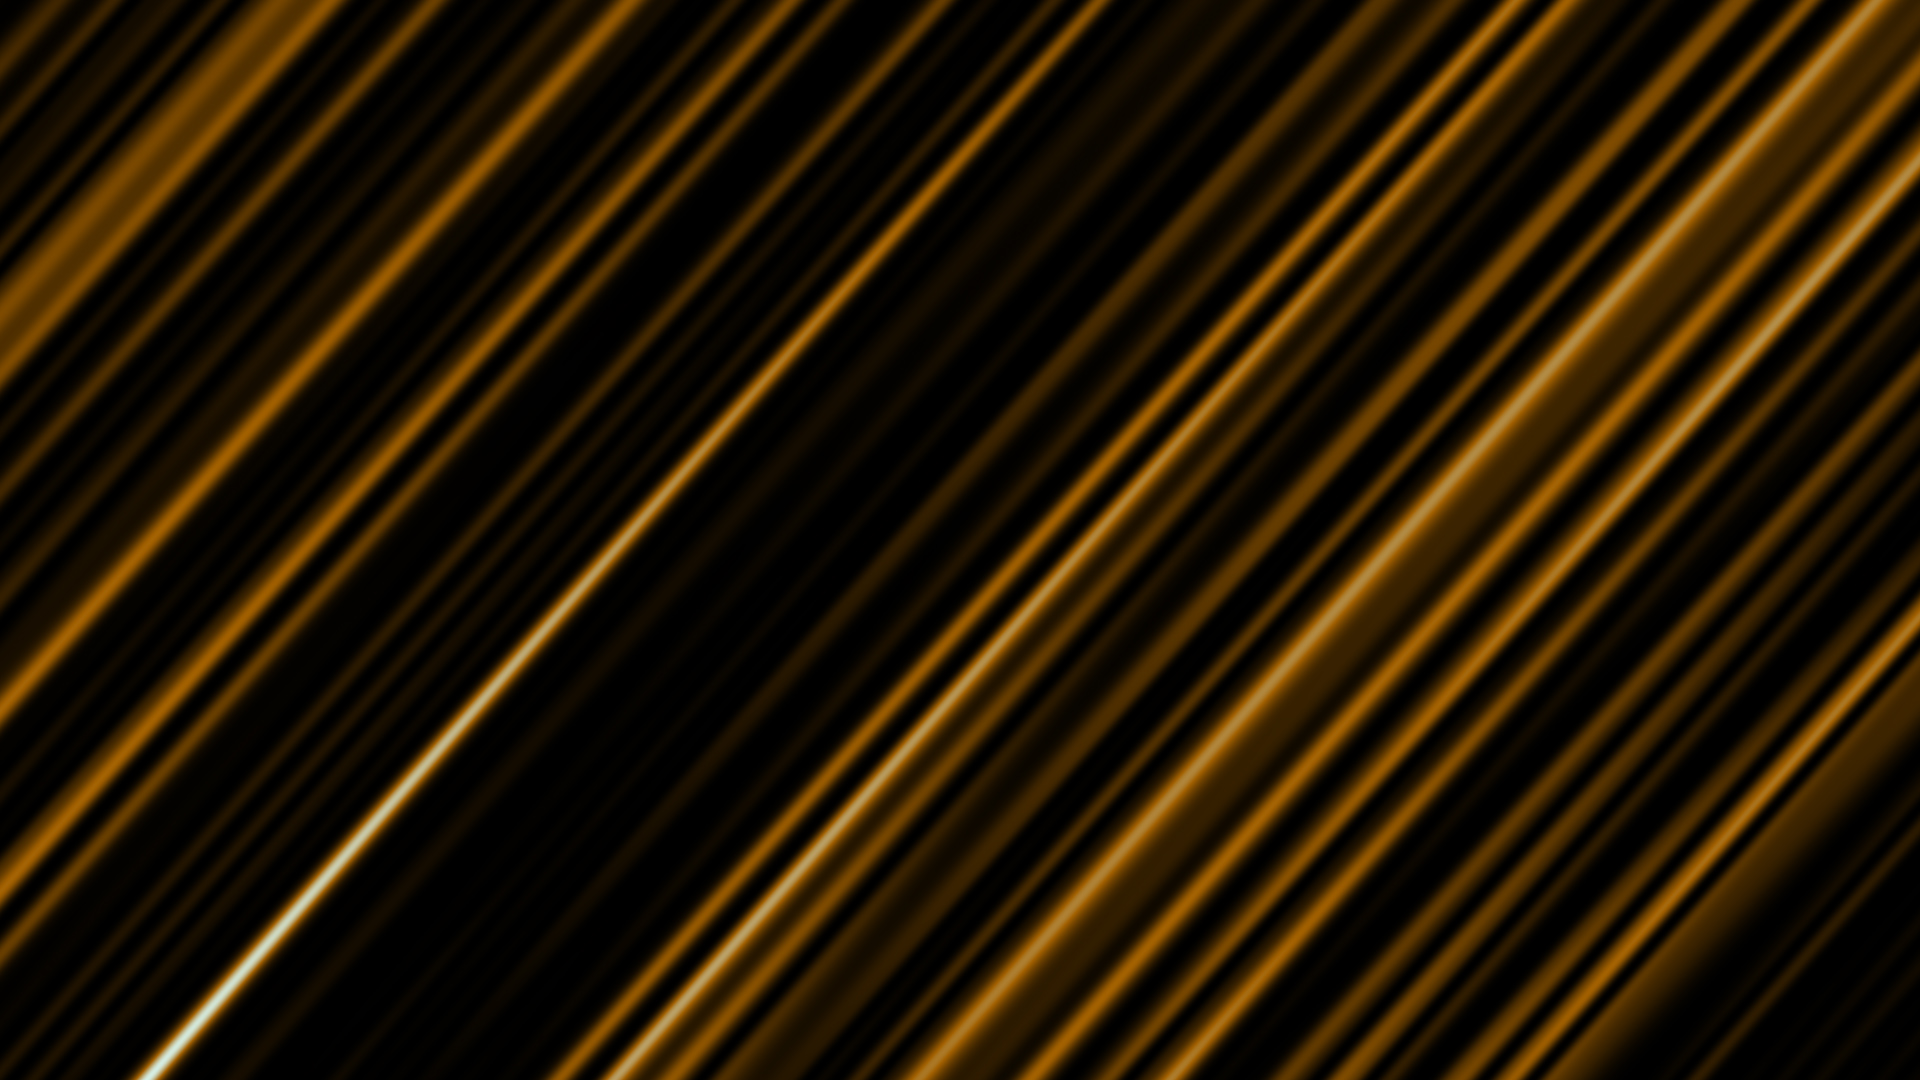 Abstract Brown And Golden Fractal Background Grid n